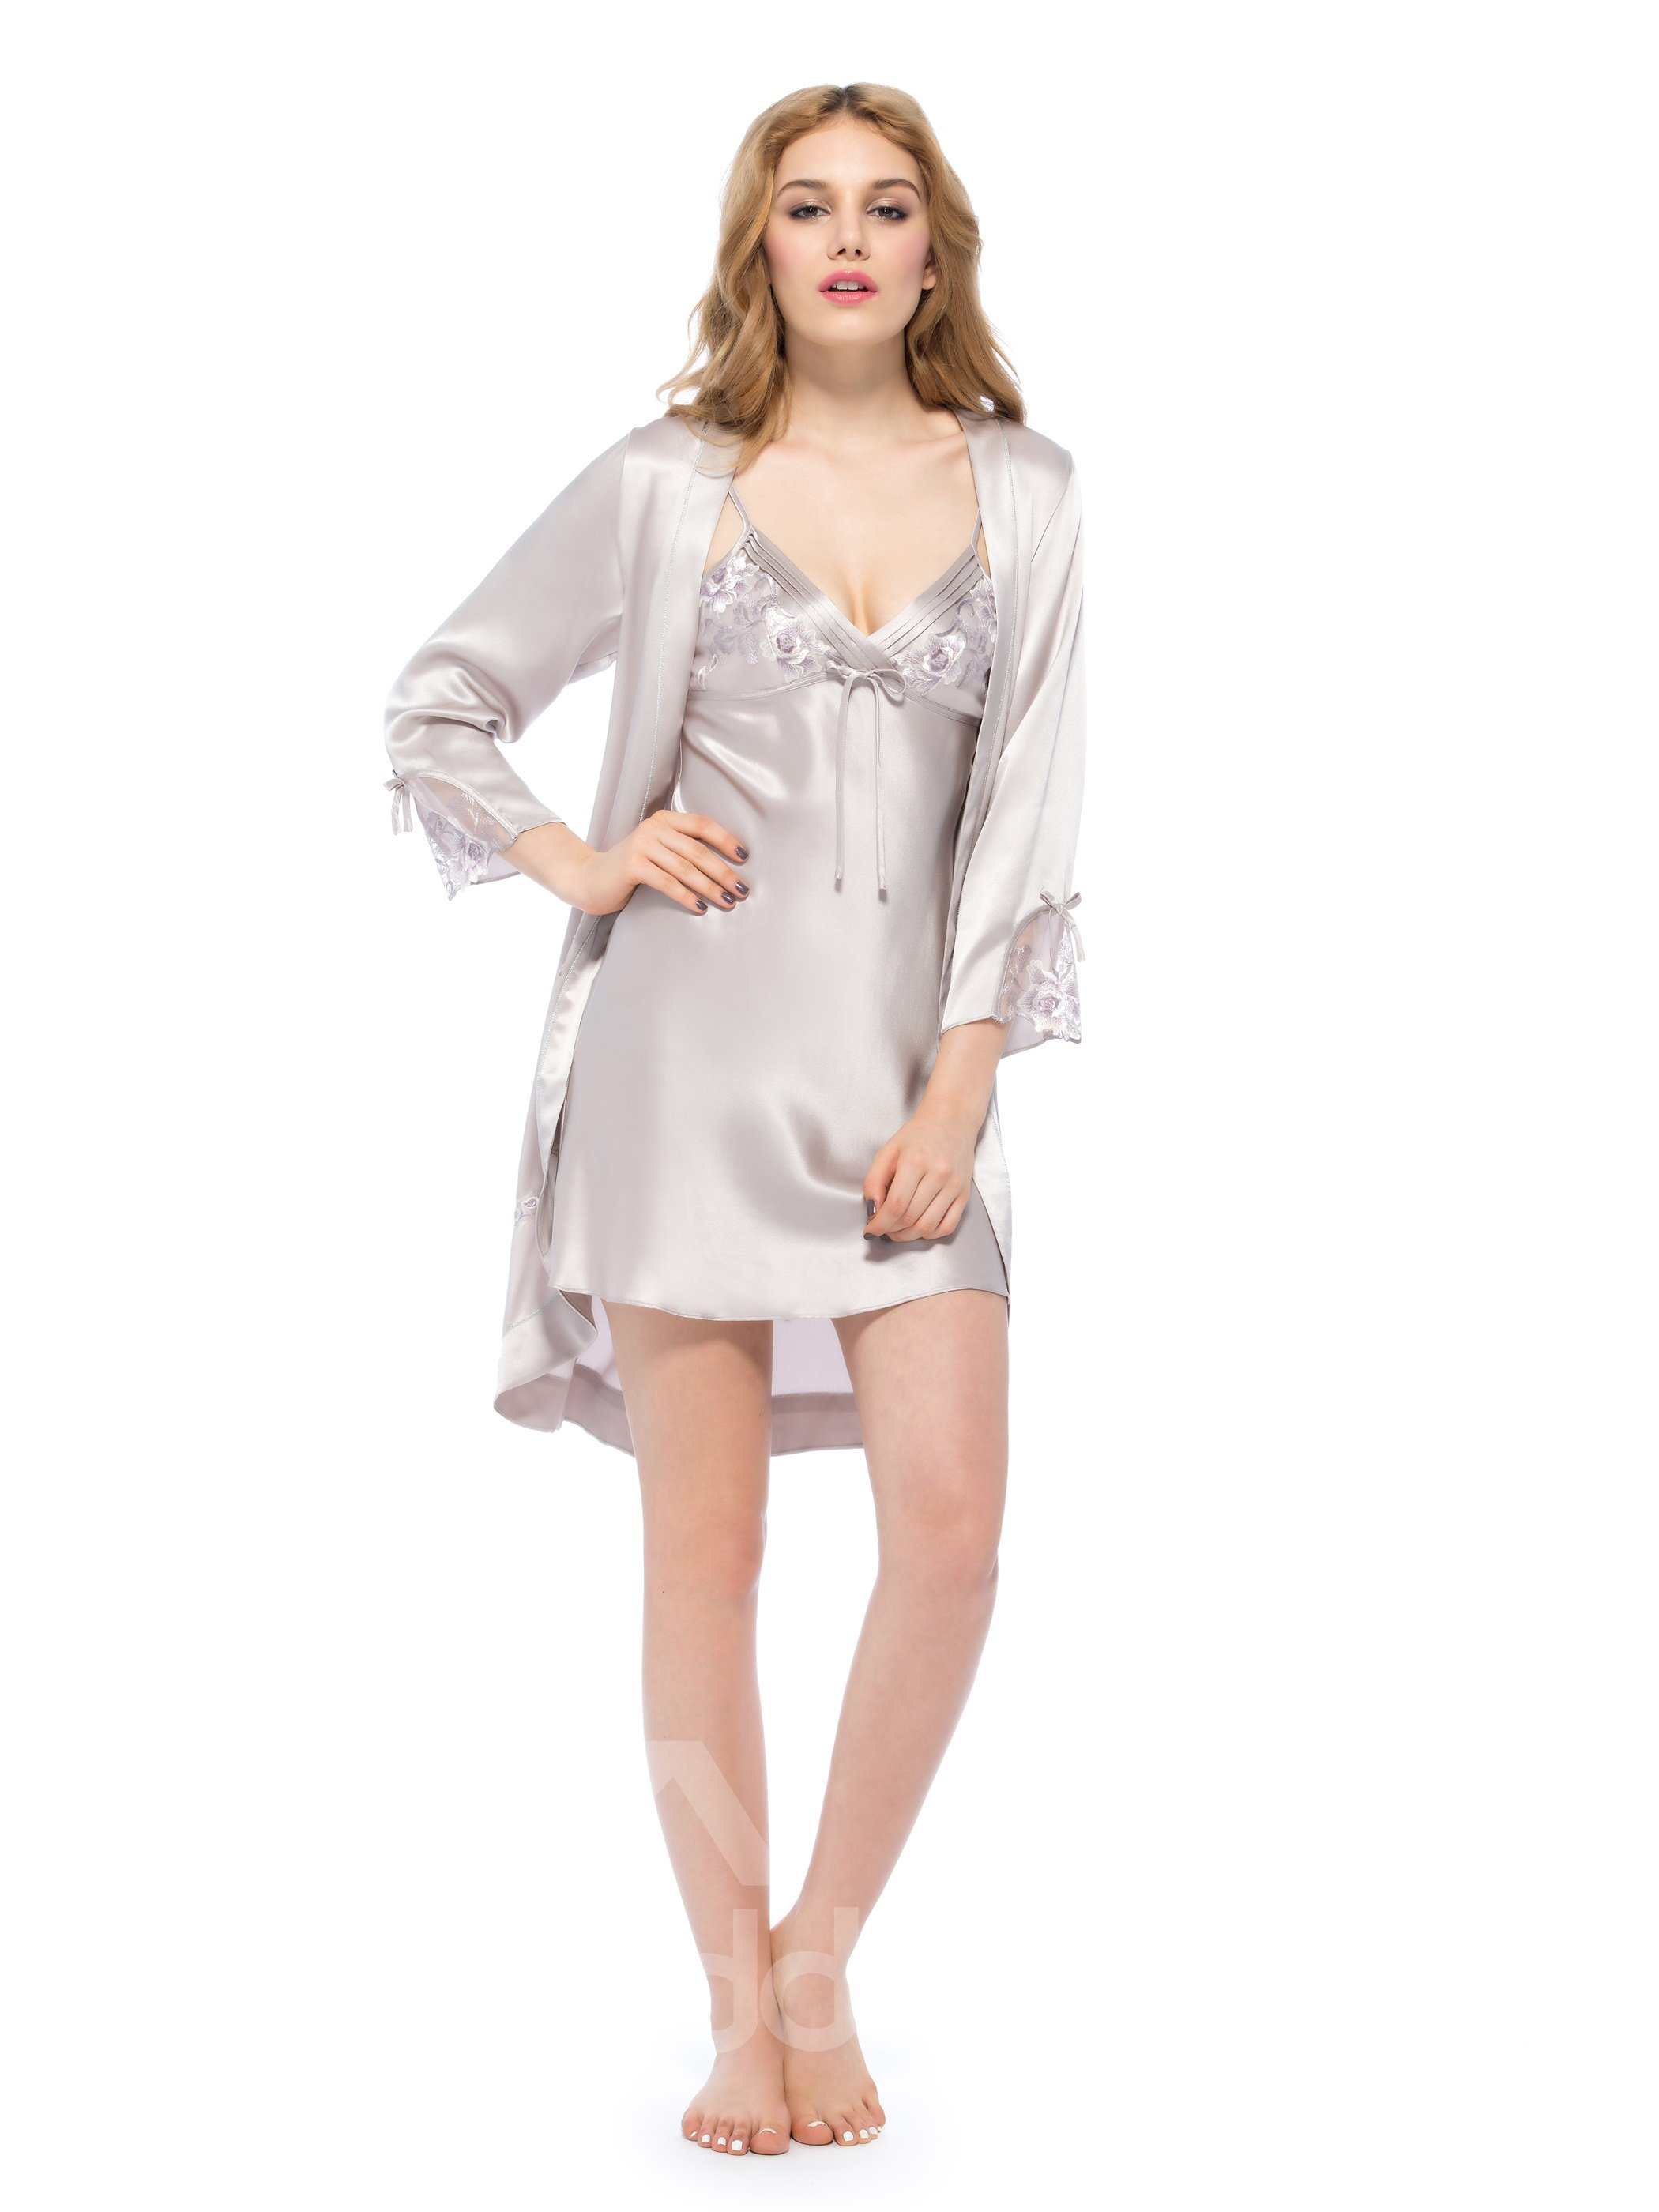 Fantastic Embroidery Silk Robe and Chemise Set